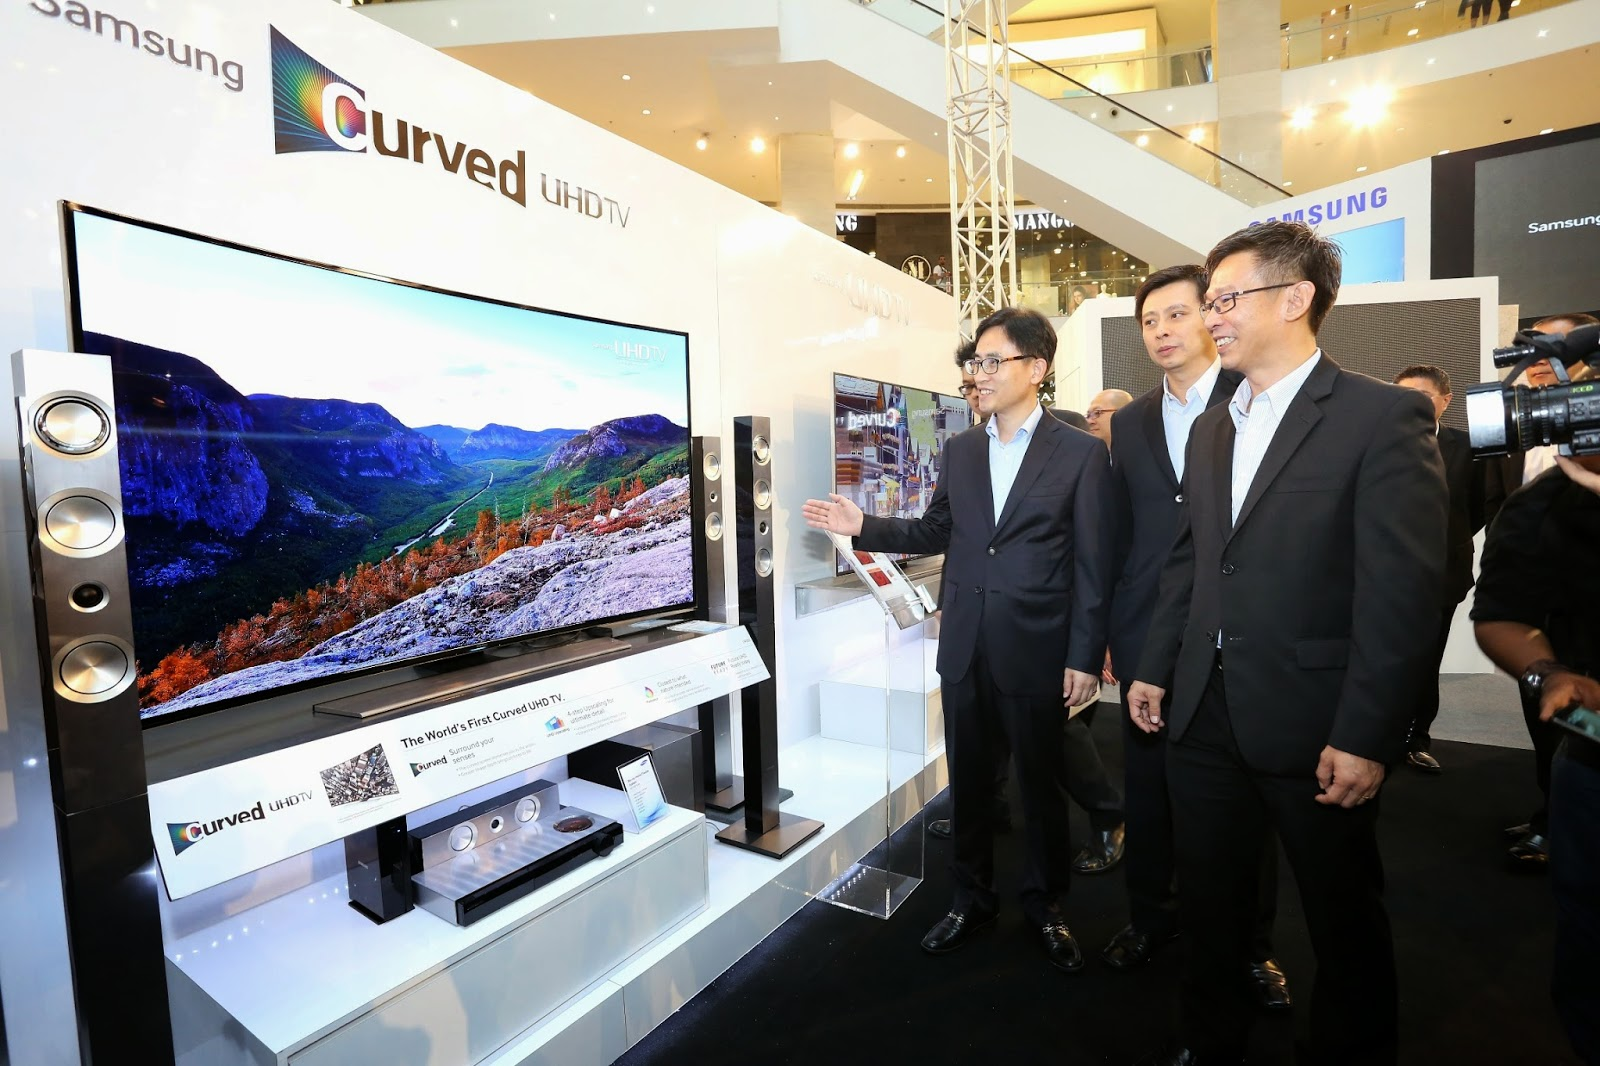 Samsung Unveiled World's First Curved Ultra High Definition (UHD) TV 1